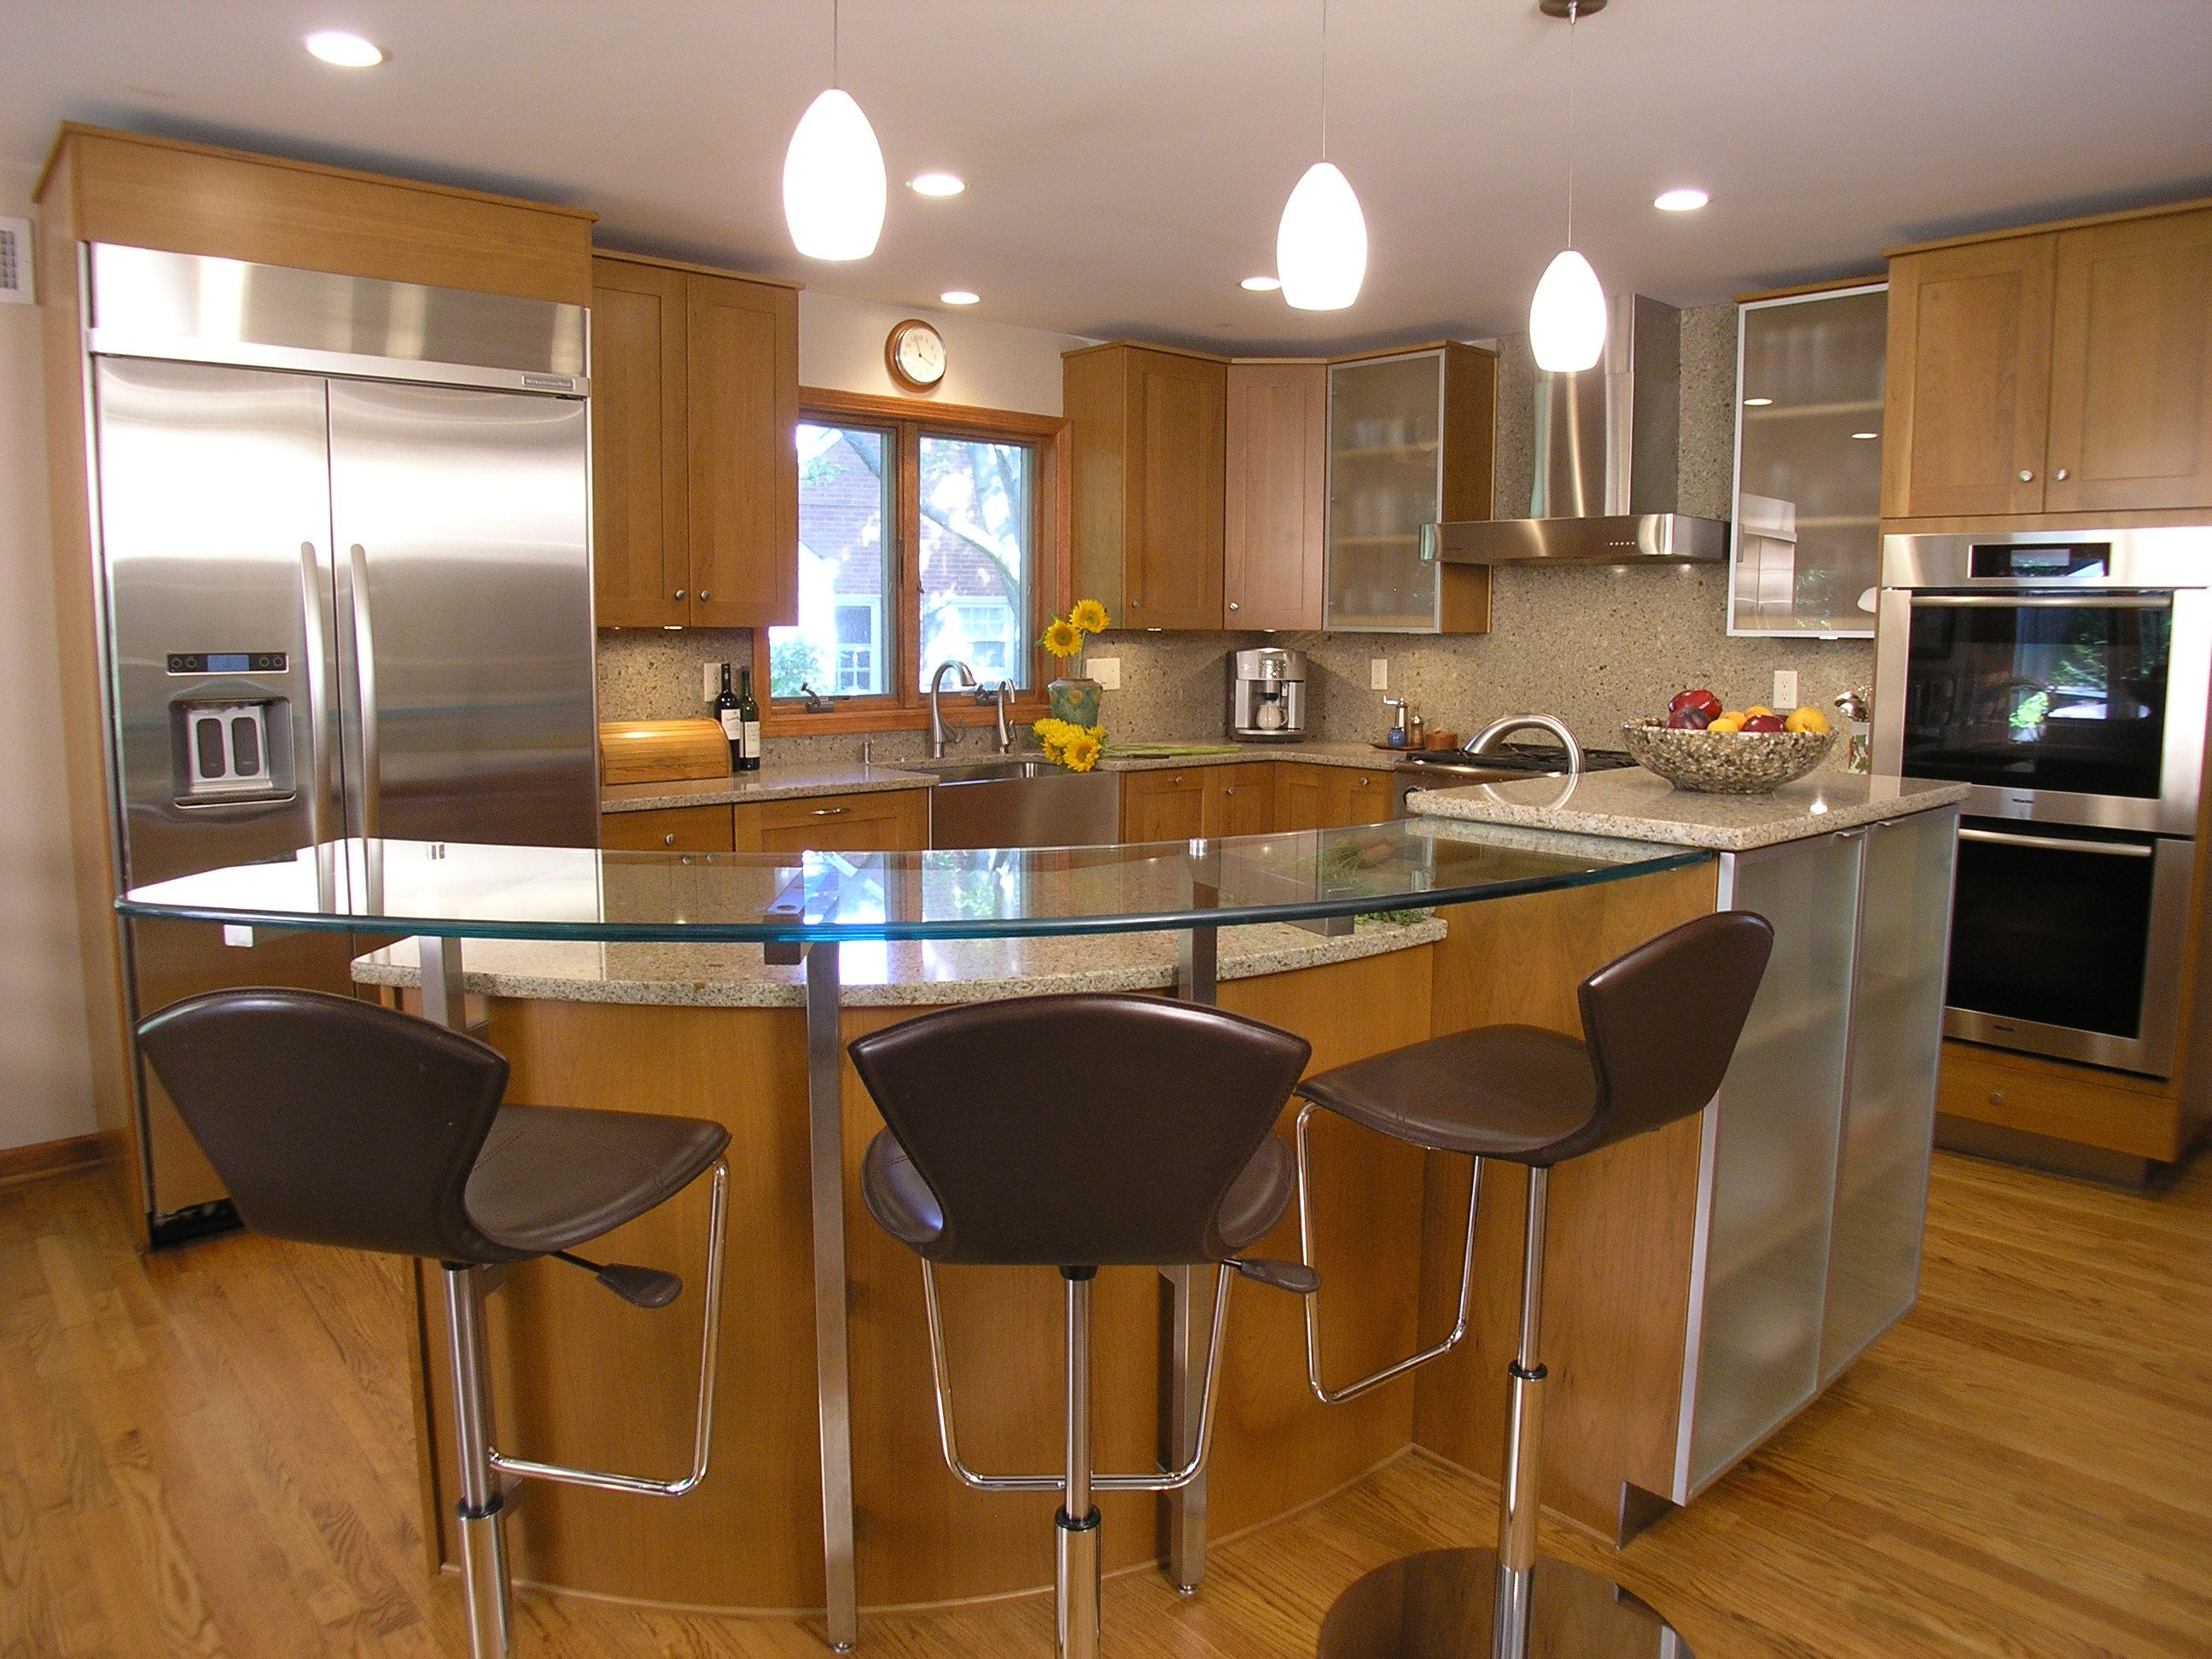 Kitchen Bar Table And Stools 1000 Images About Kitchen On Pinterest Modern Kitchen Cabinets